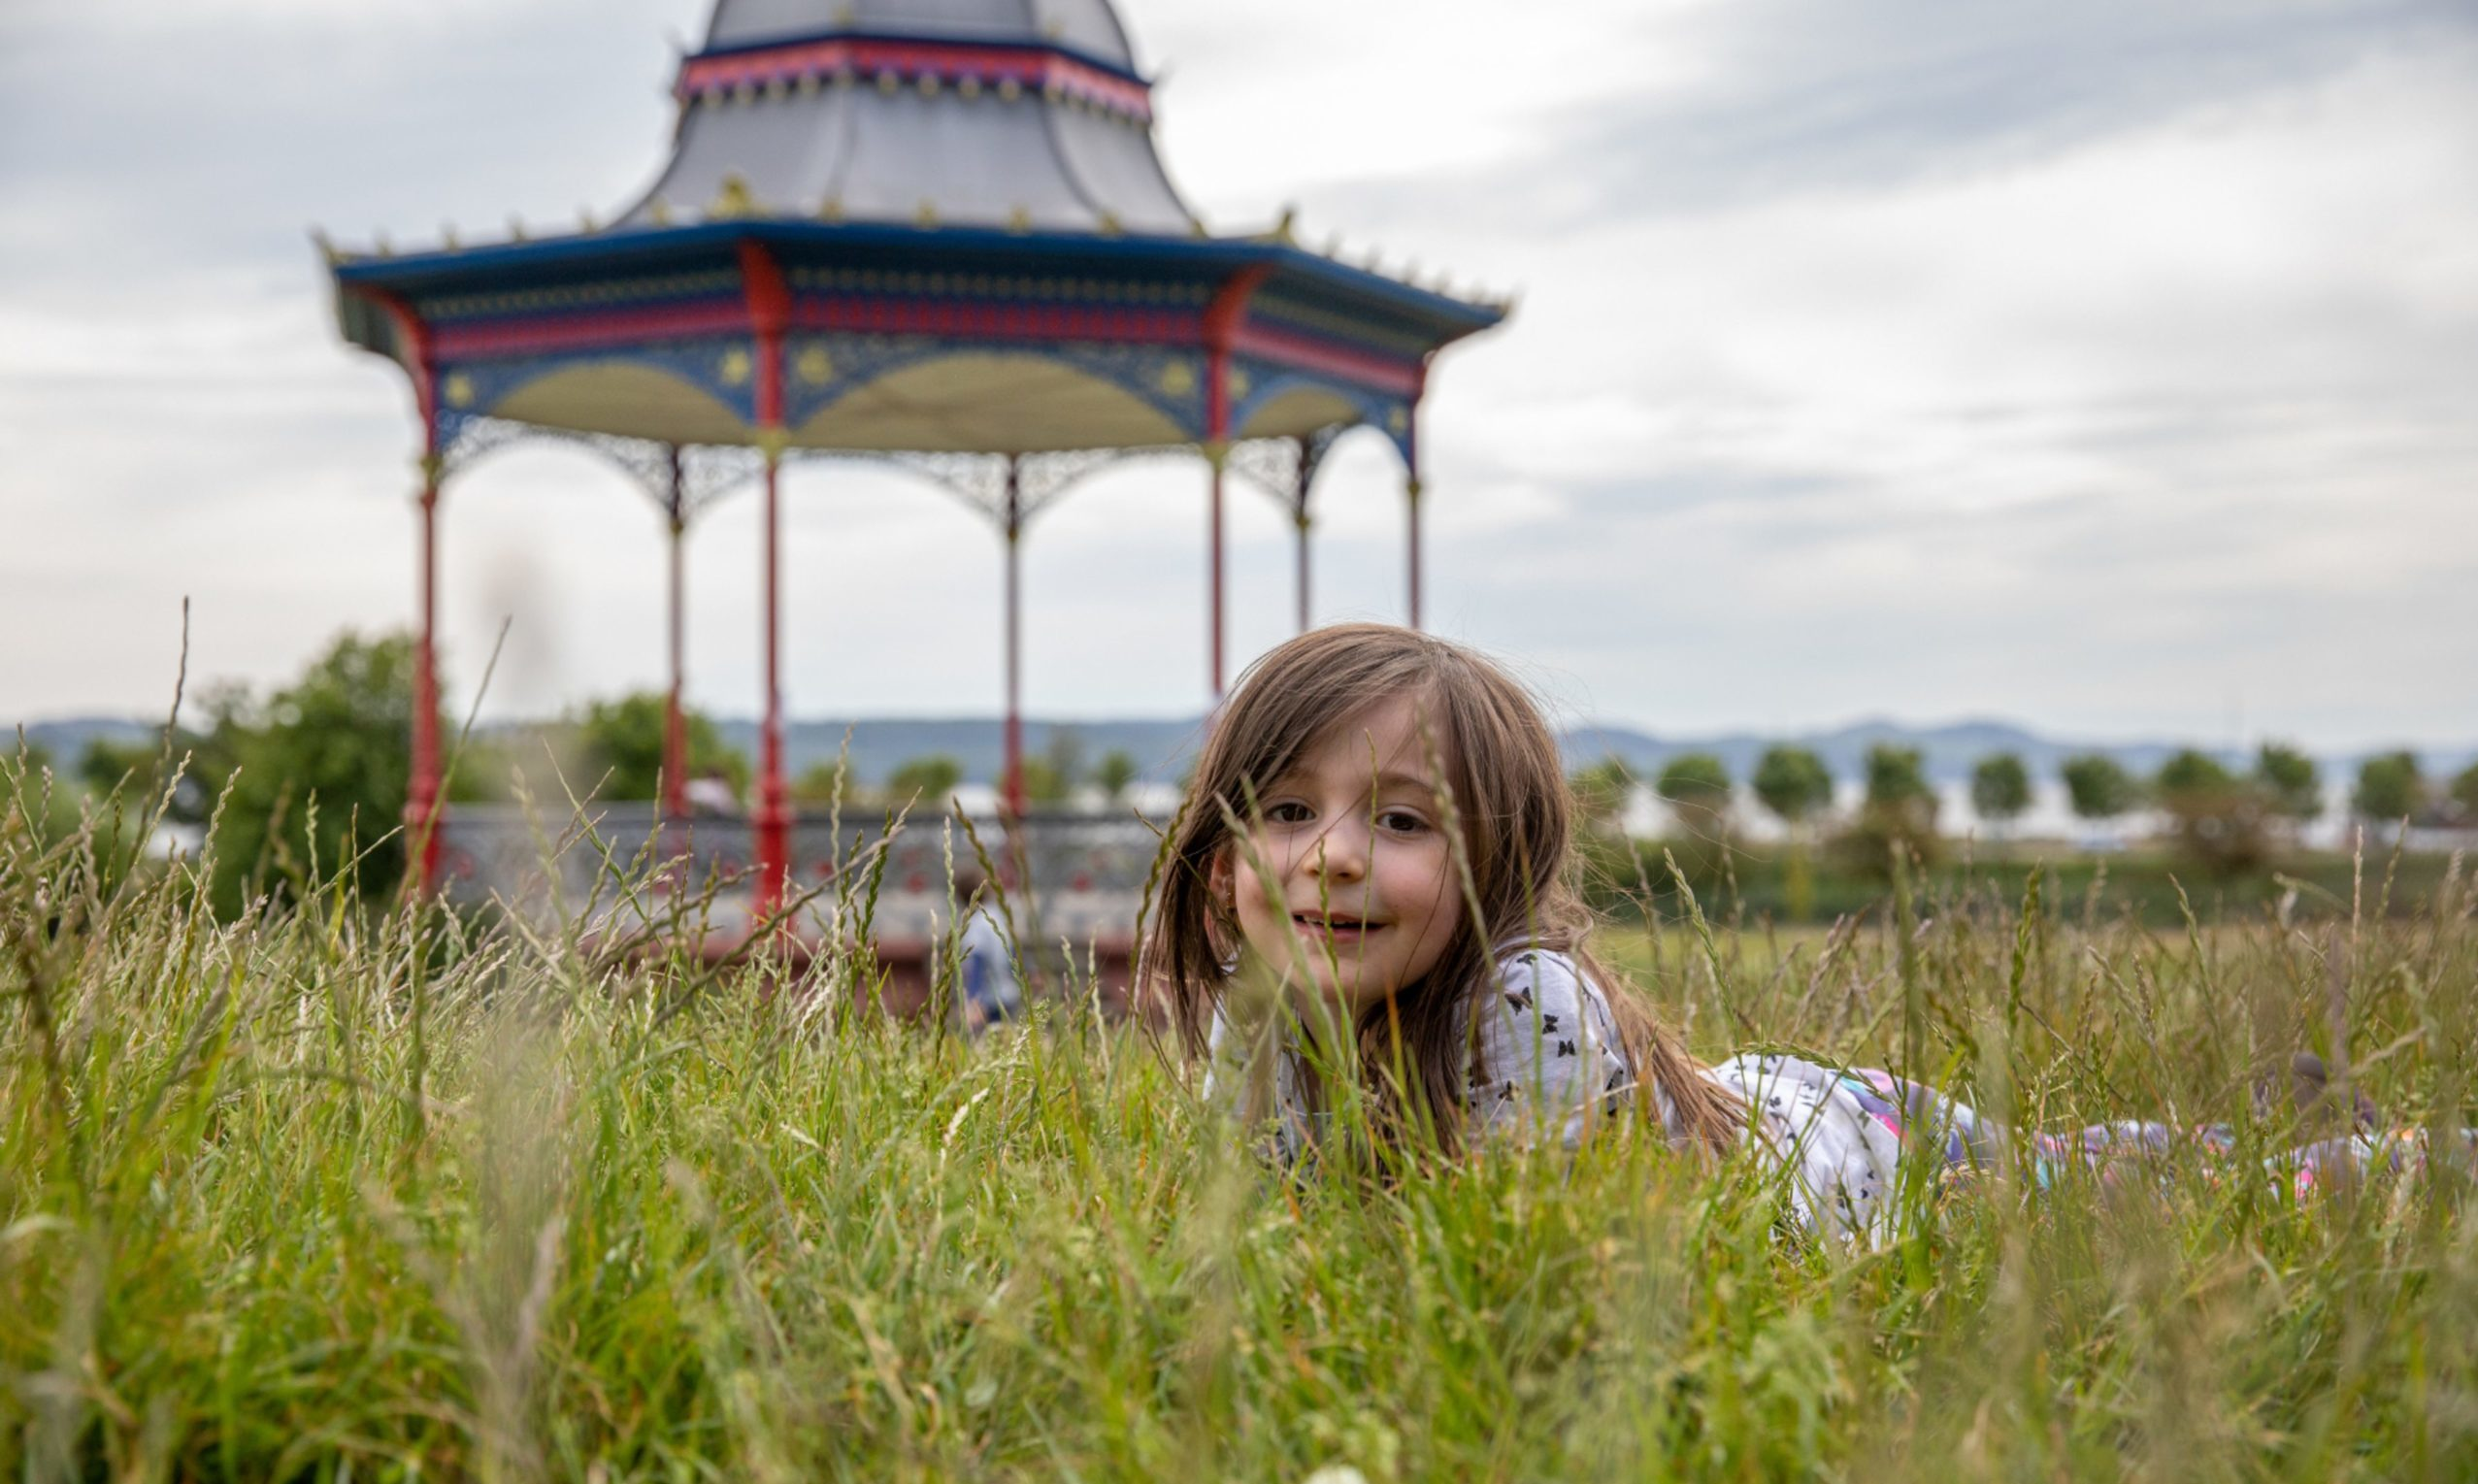 Zoe Maure exploring the long grass on the northern perimeter of Magdalen Green, Dundee.